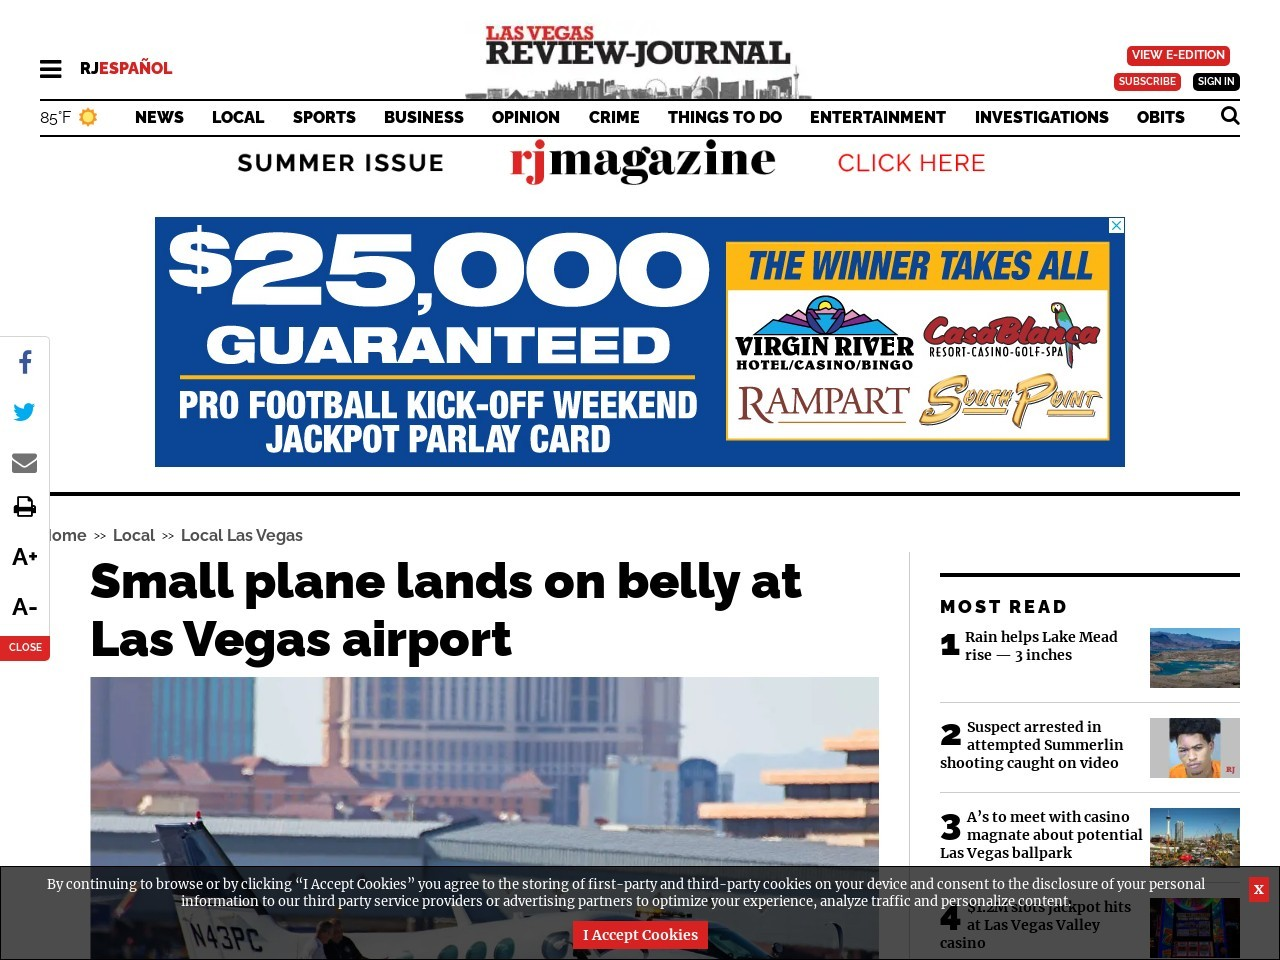 Small plane lands on belly at Las Vegas airport